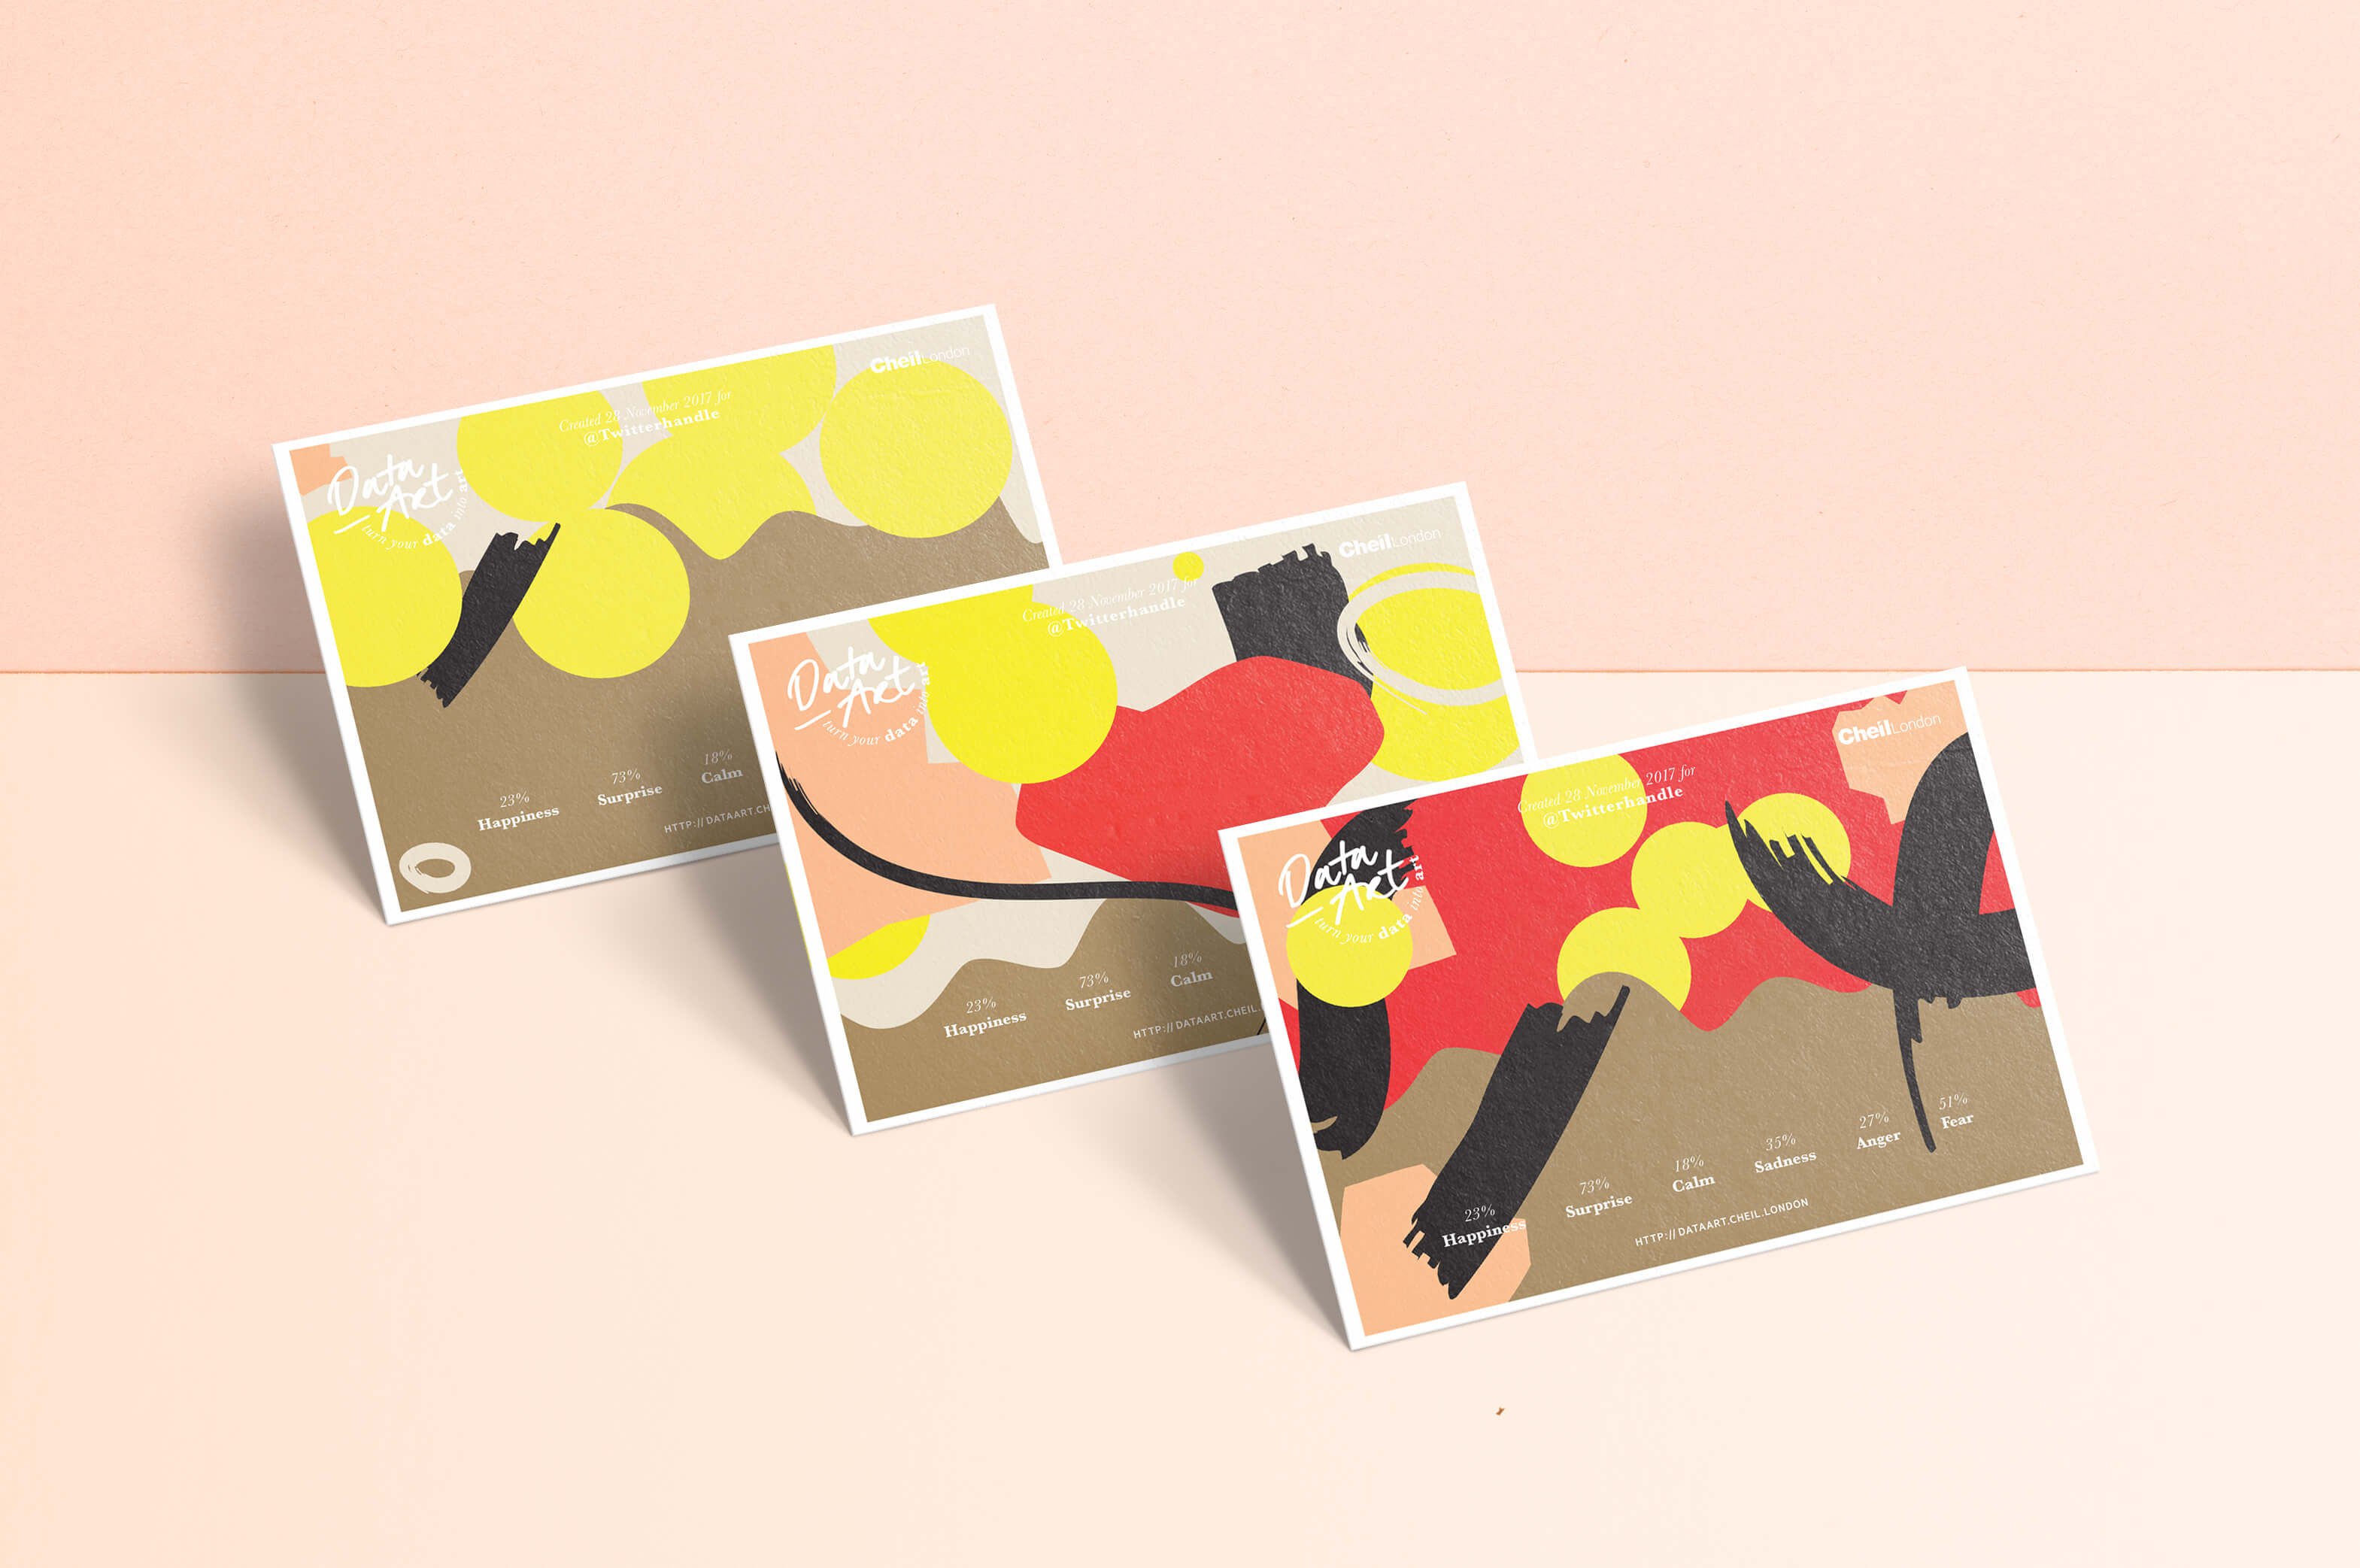 three postcards with bespoke visual outcomes from data art platform